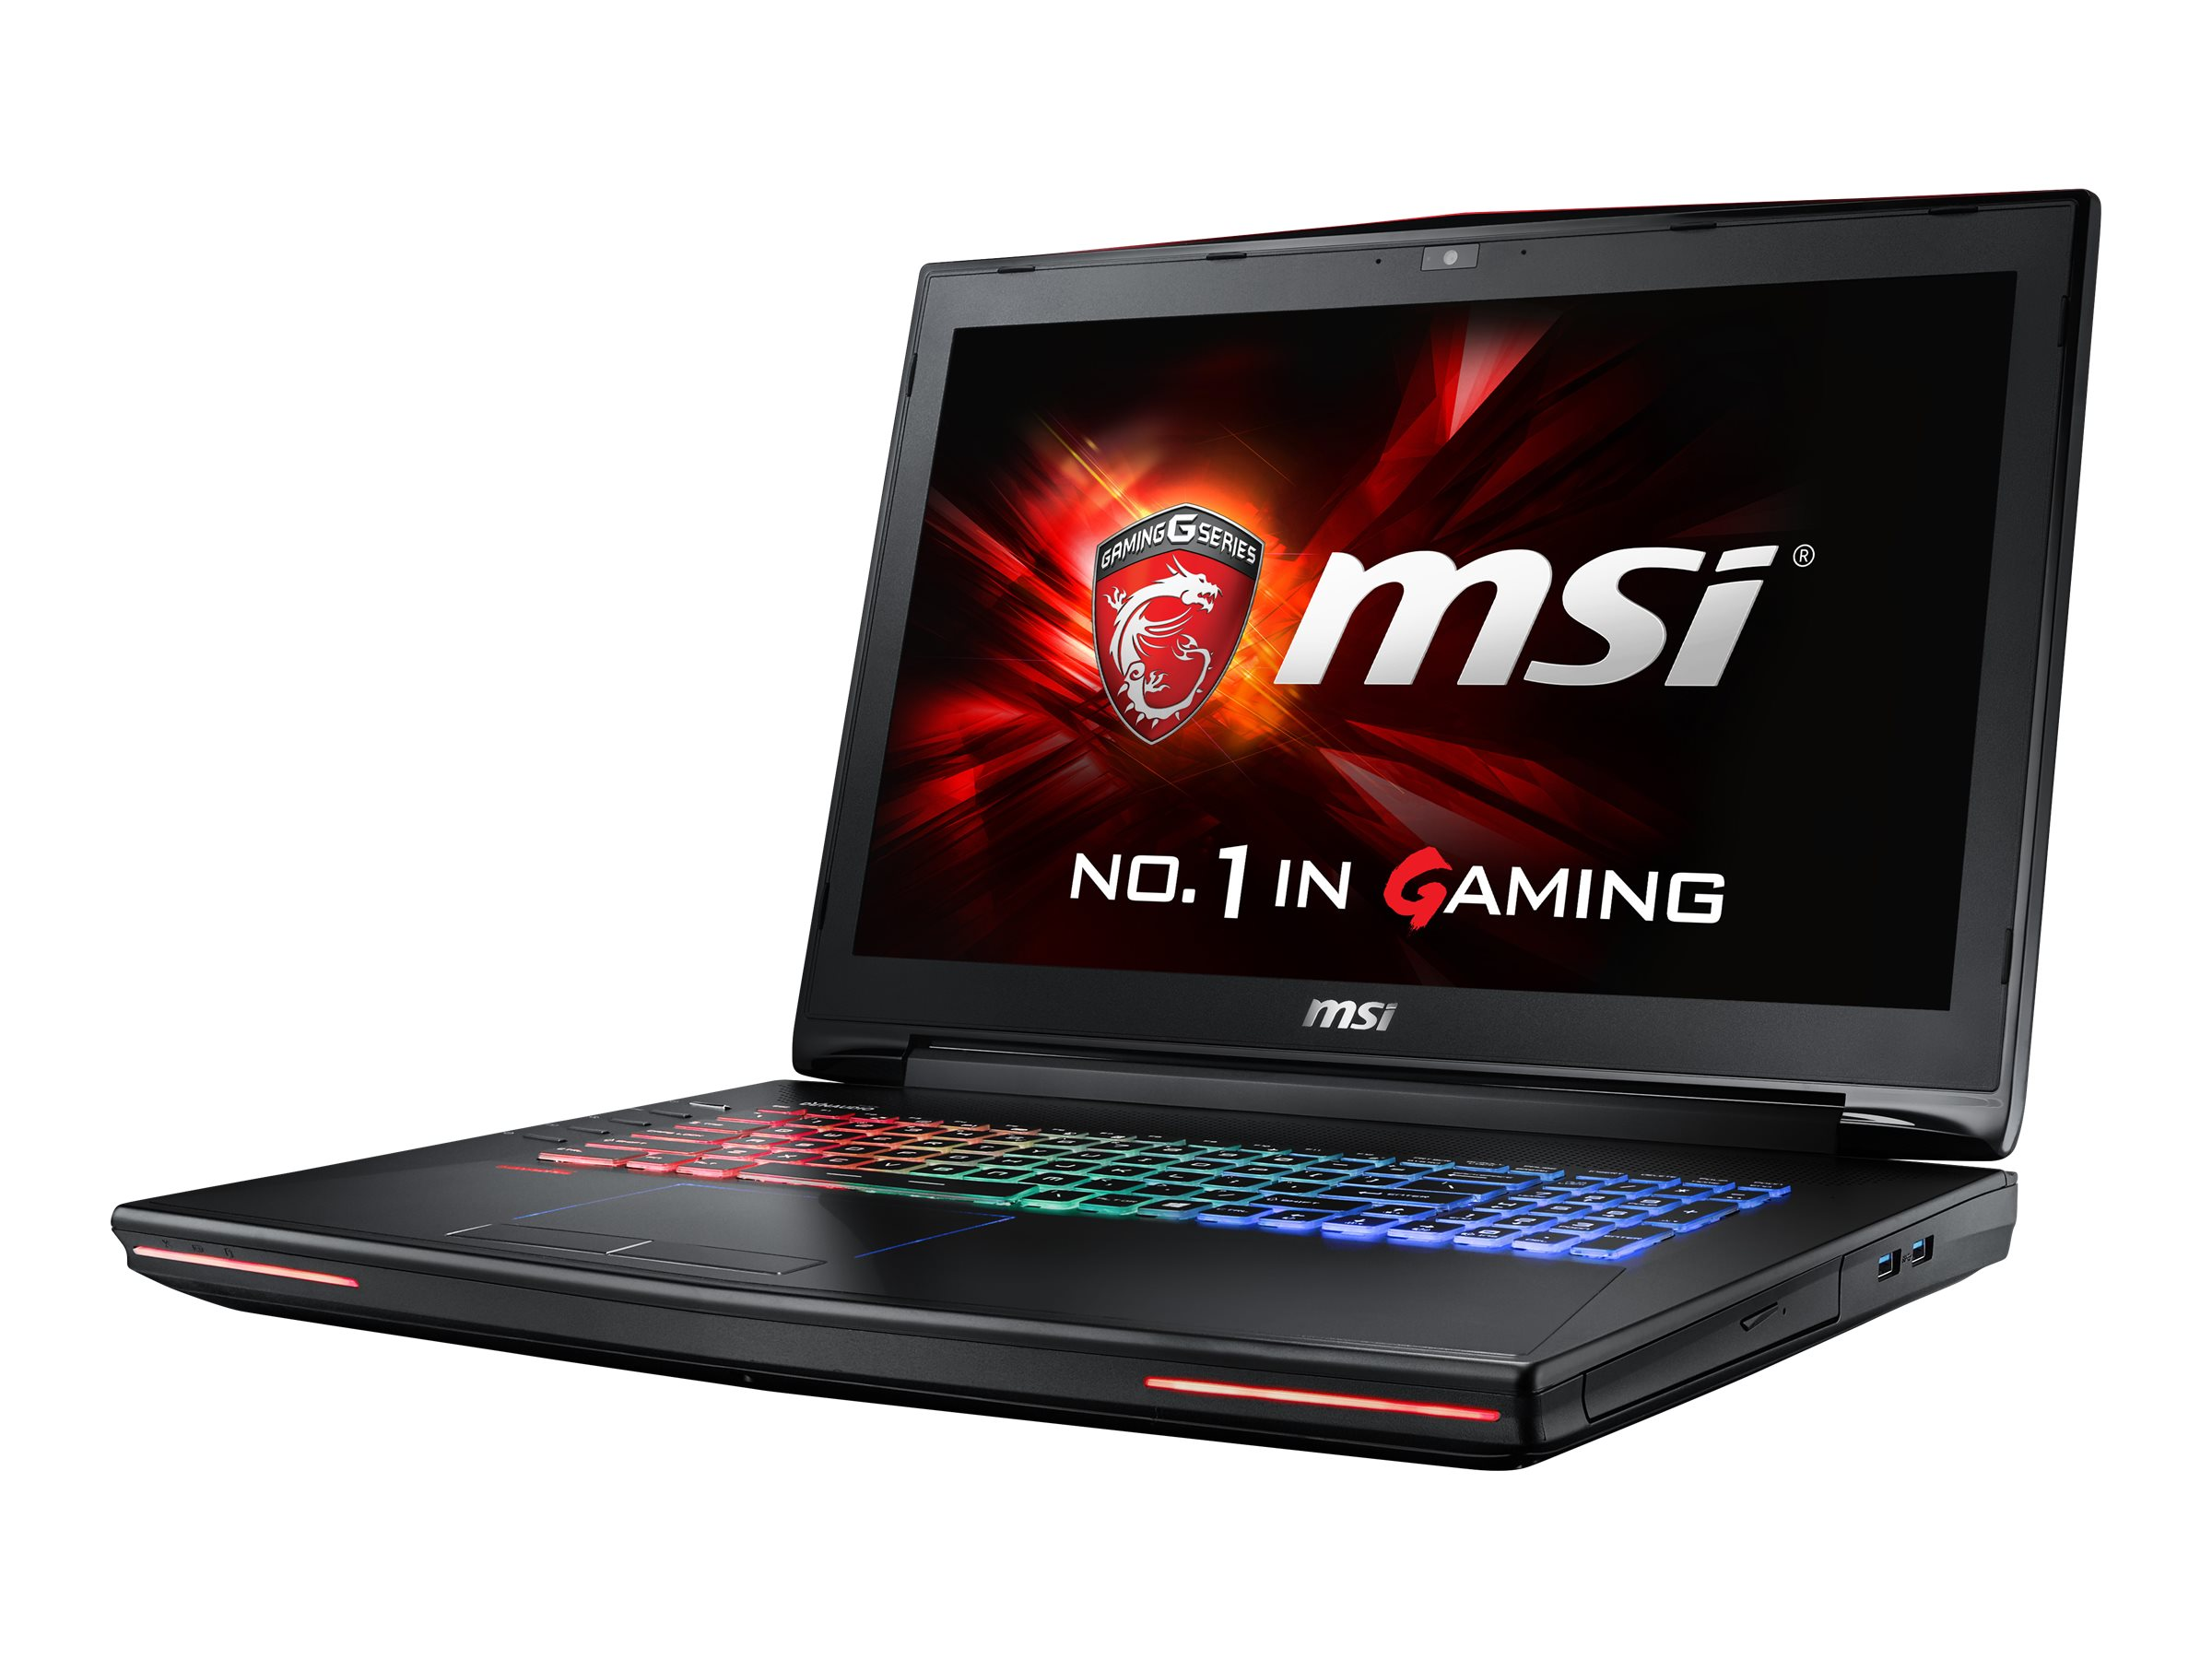 MSI GT72VR Dominator-033 Notebook PC